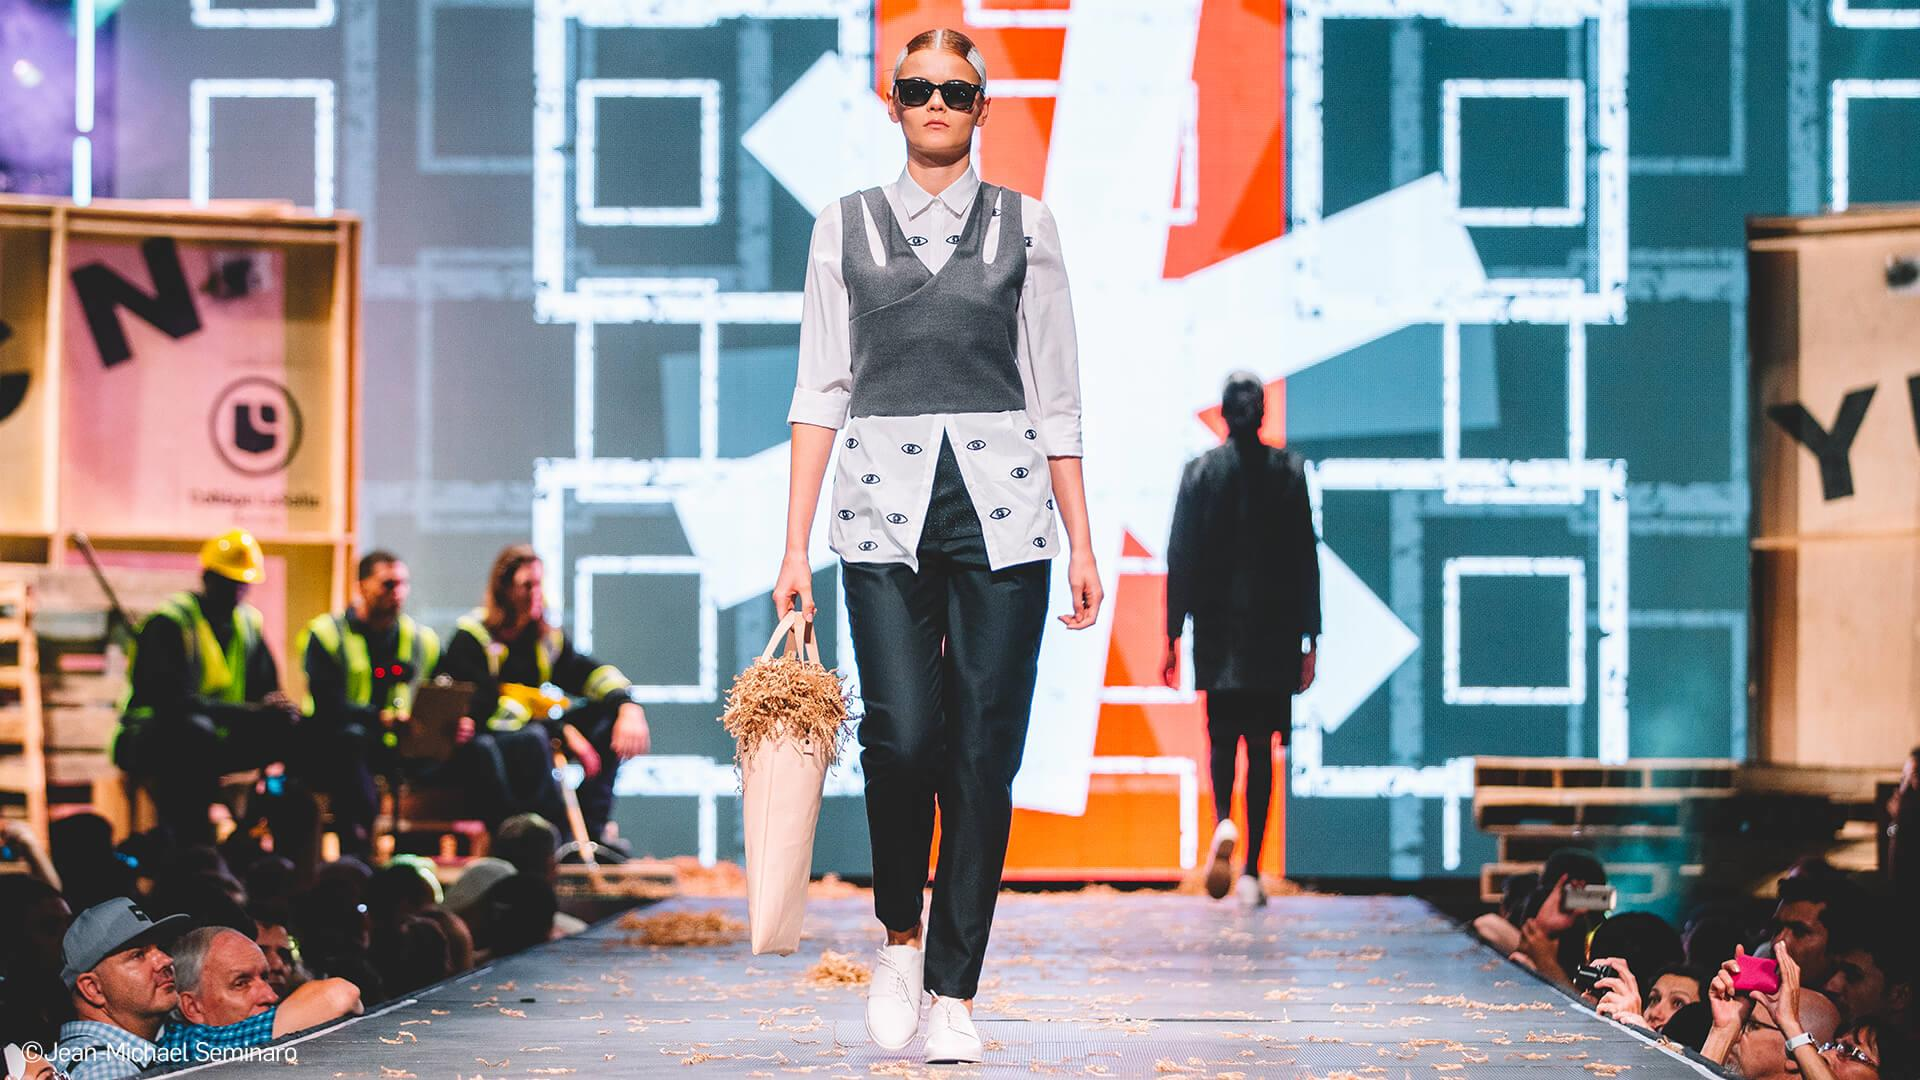 Fashion designing courses fees in pune 100